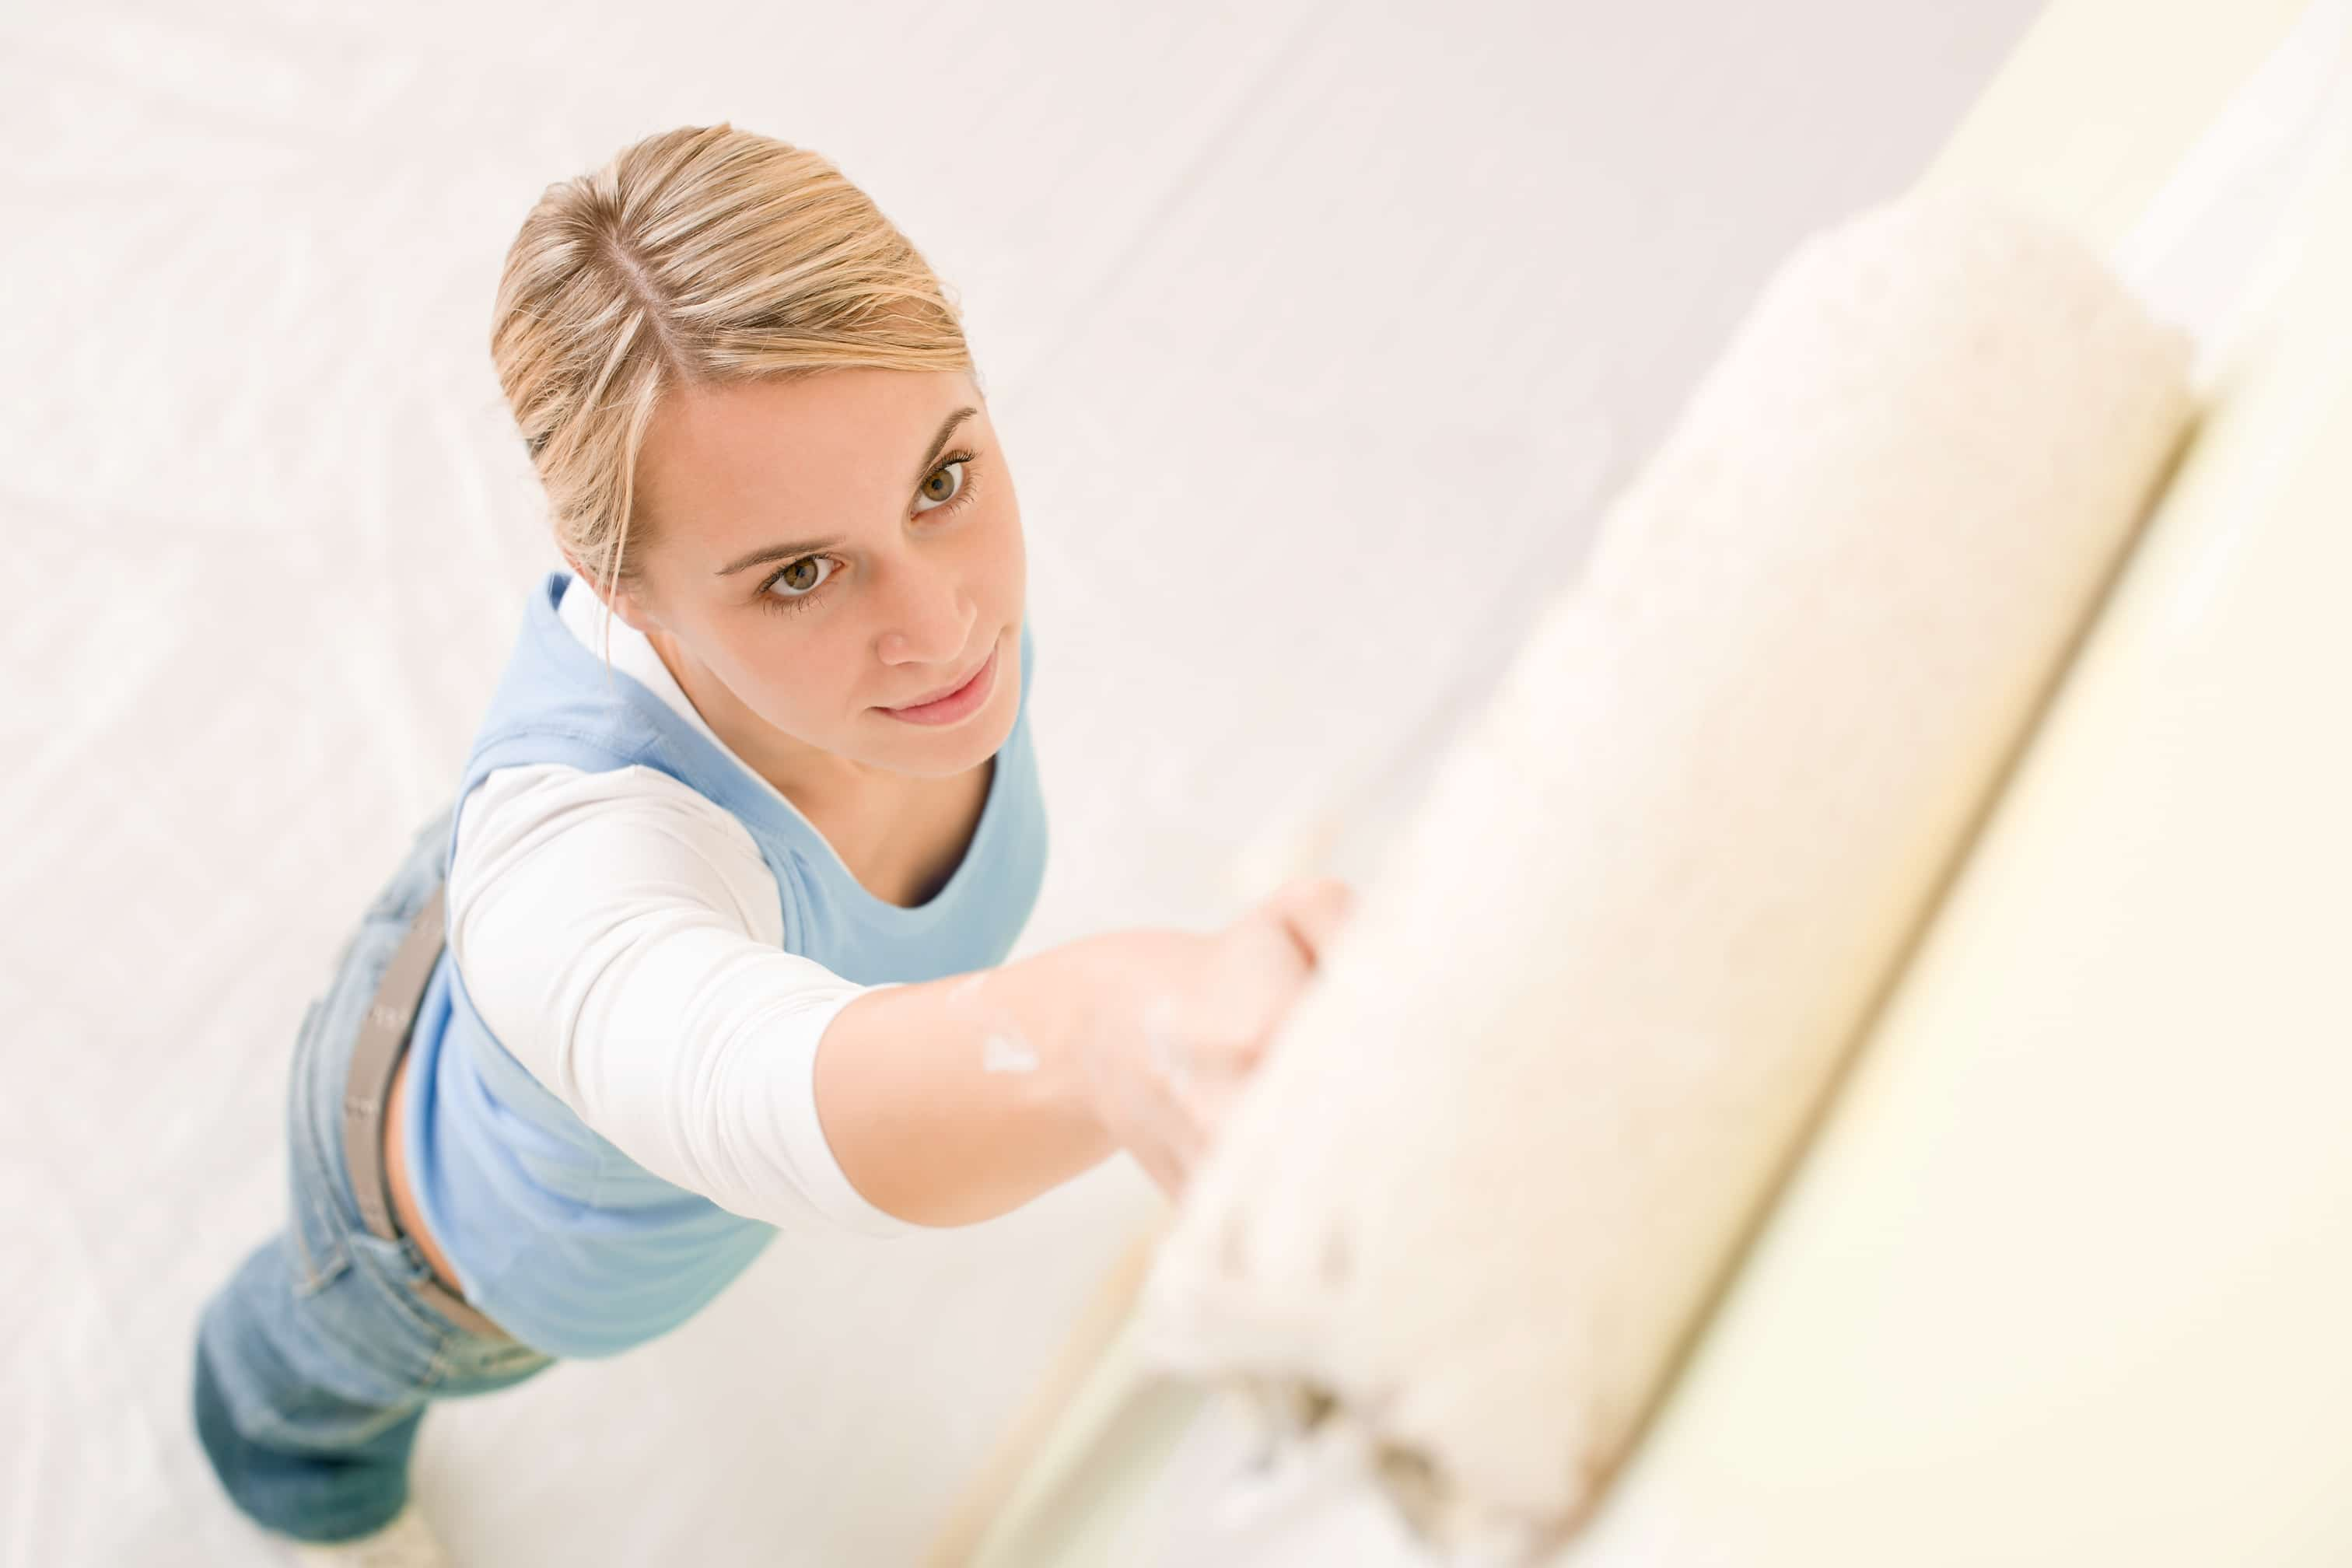 Top Ten Things To Look For In Your Next Home